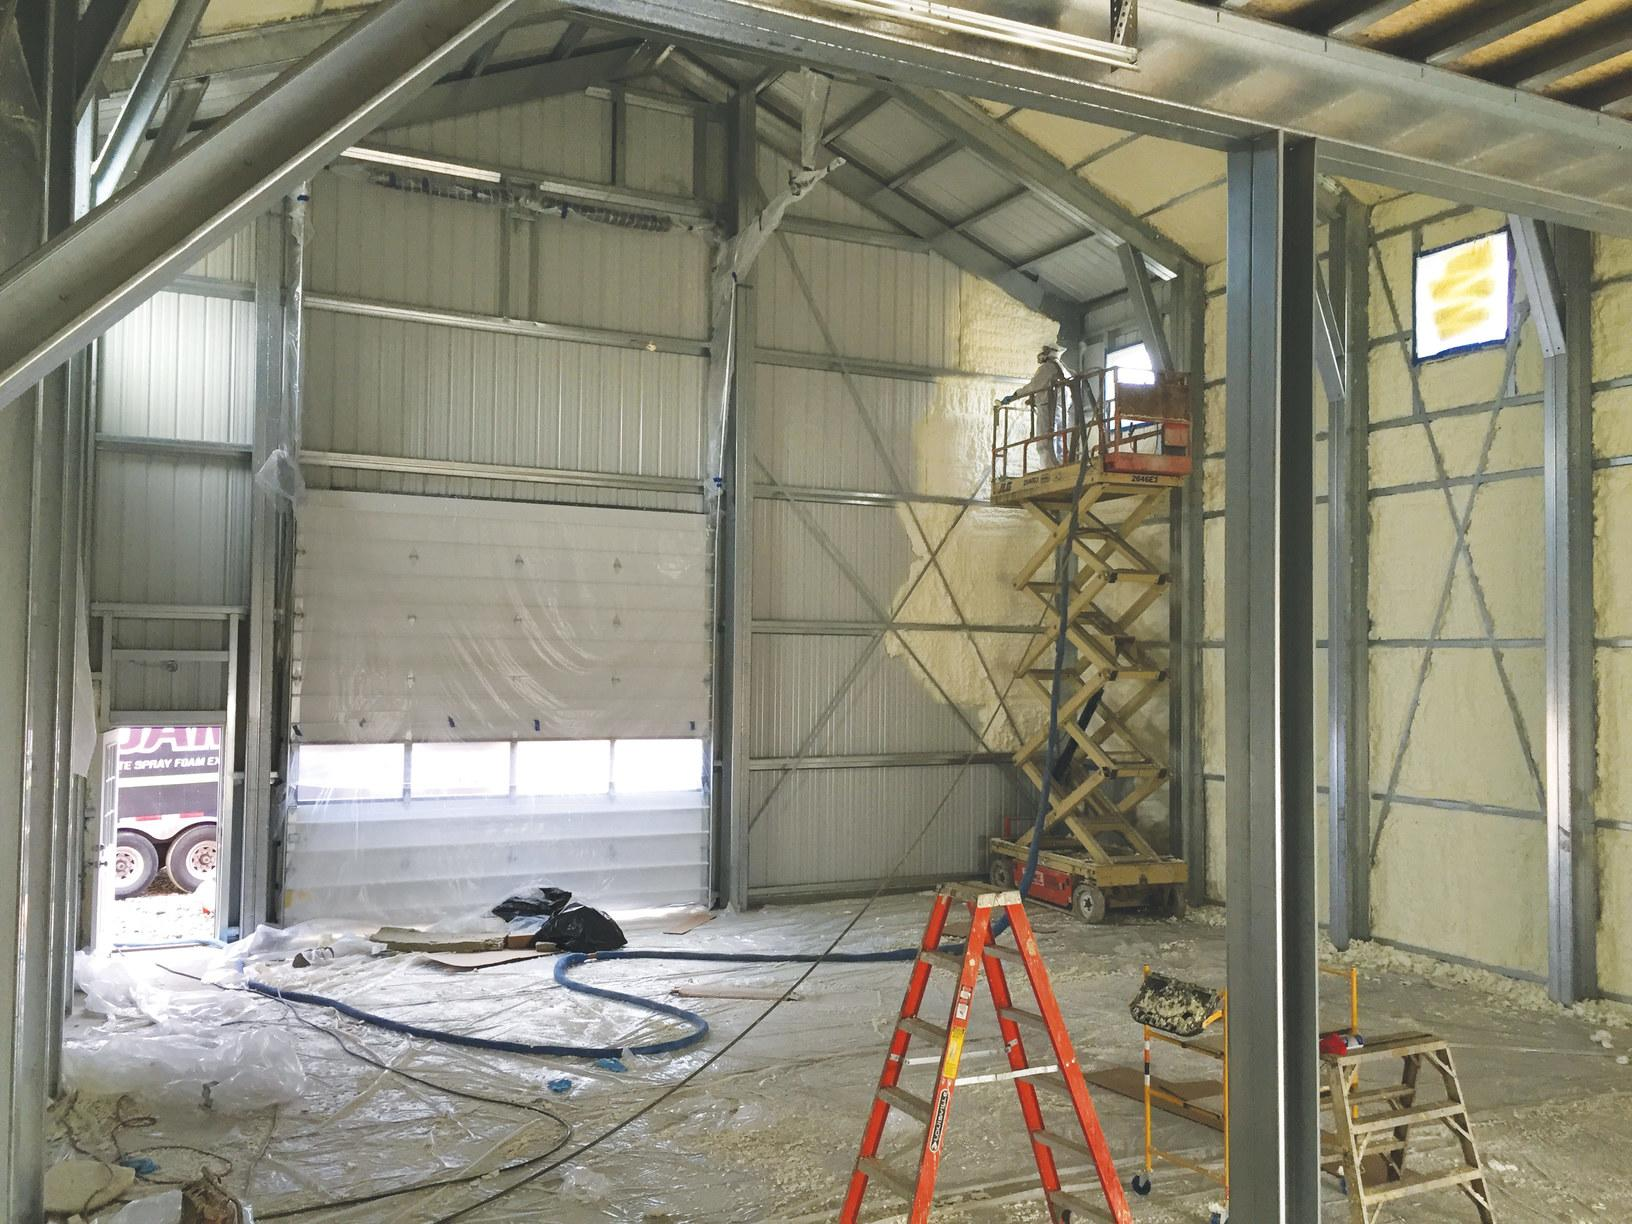 Taconic Distillery - After Photo